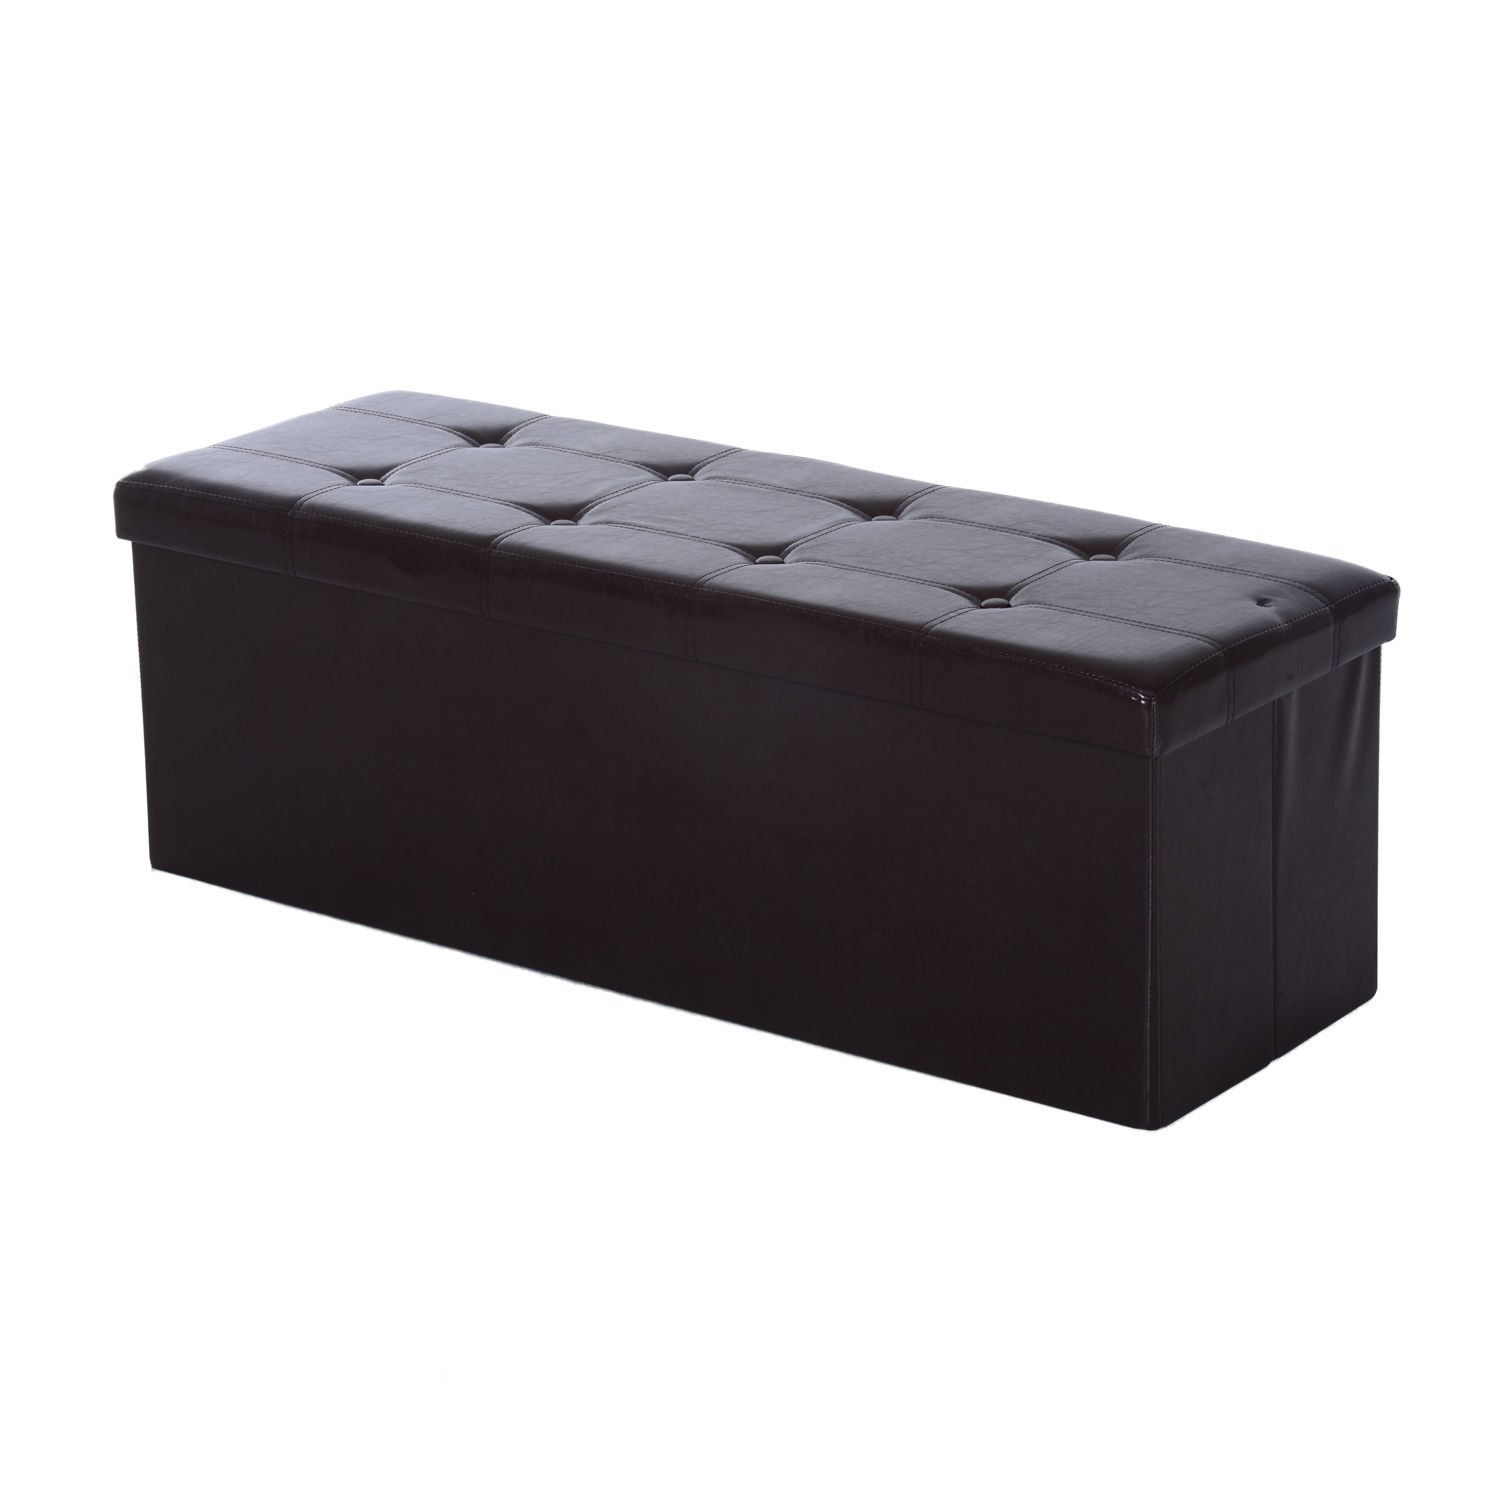 HOMCOM Collapsible Rectangular Faux Leather Storage Ottoman Box Stool Stool PU Bench Seat Folding Footstool w/Lid 110Lx38Wx38H(cm) (Brown) Sold by MHSTAR